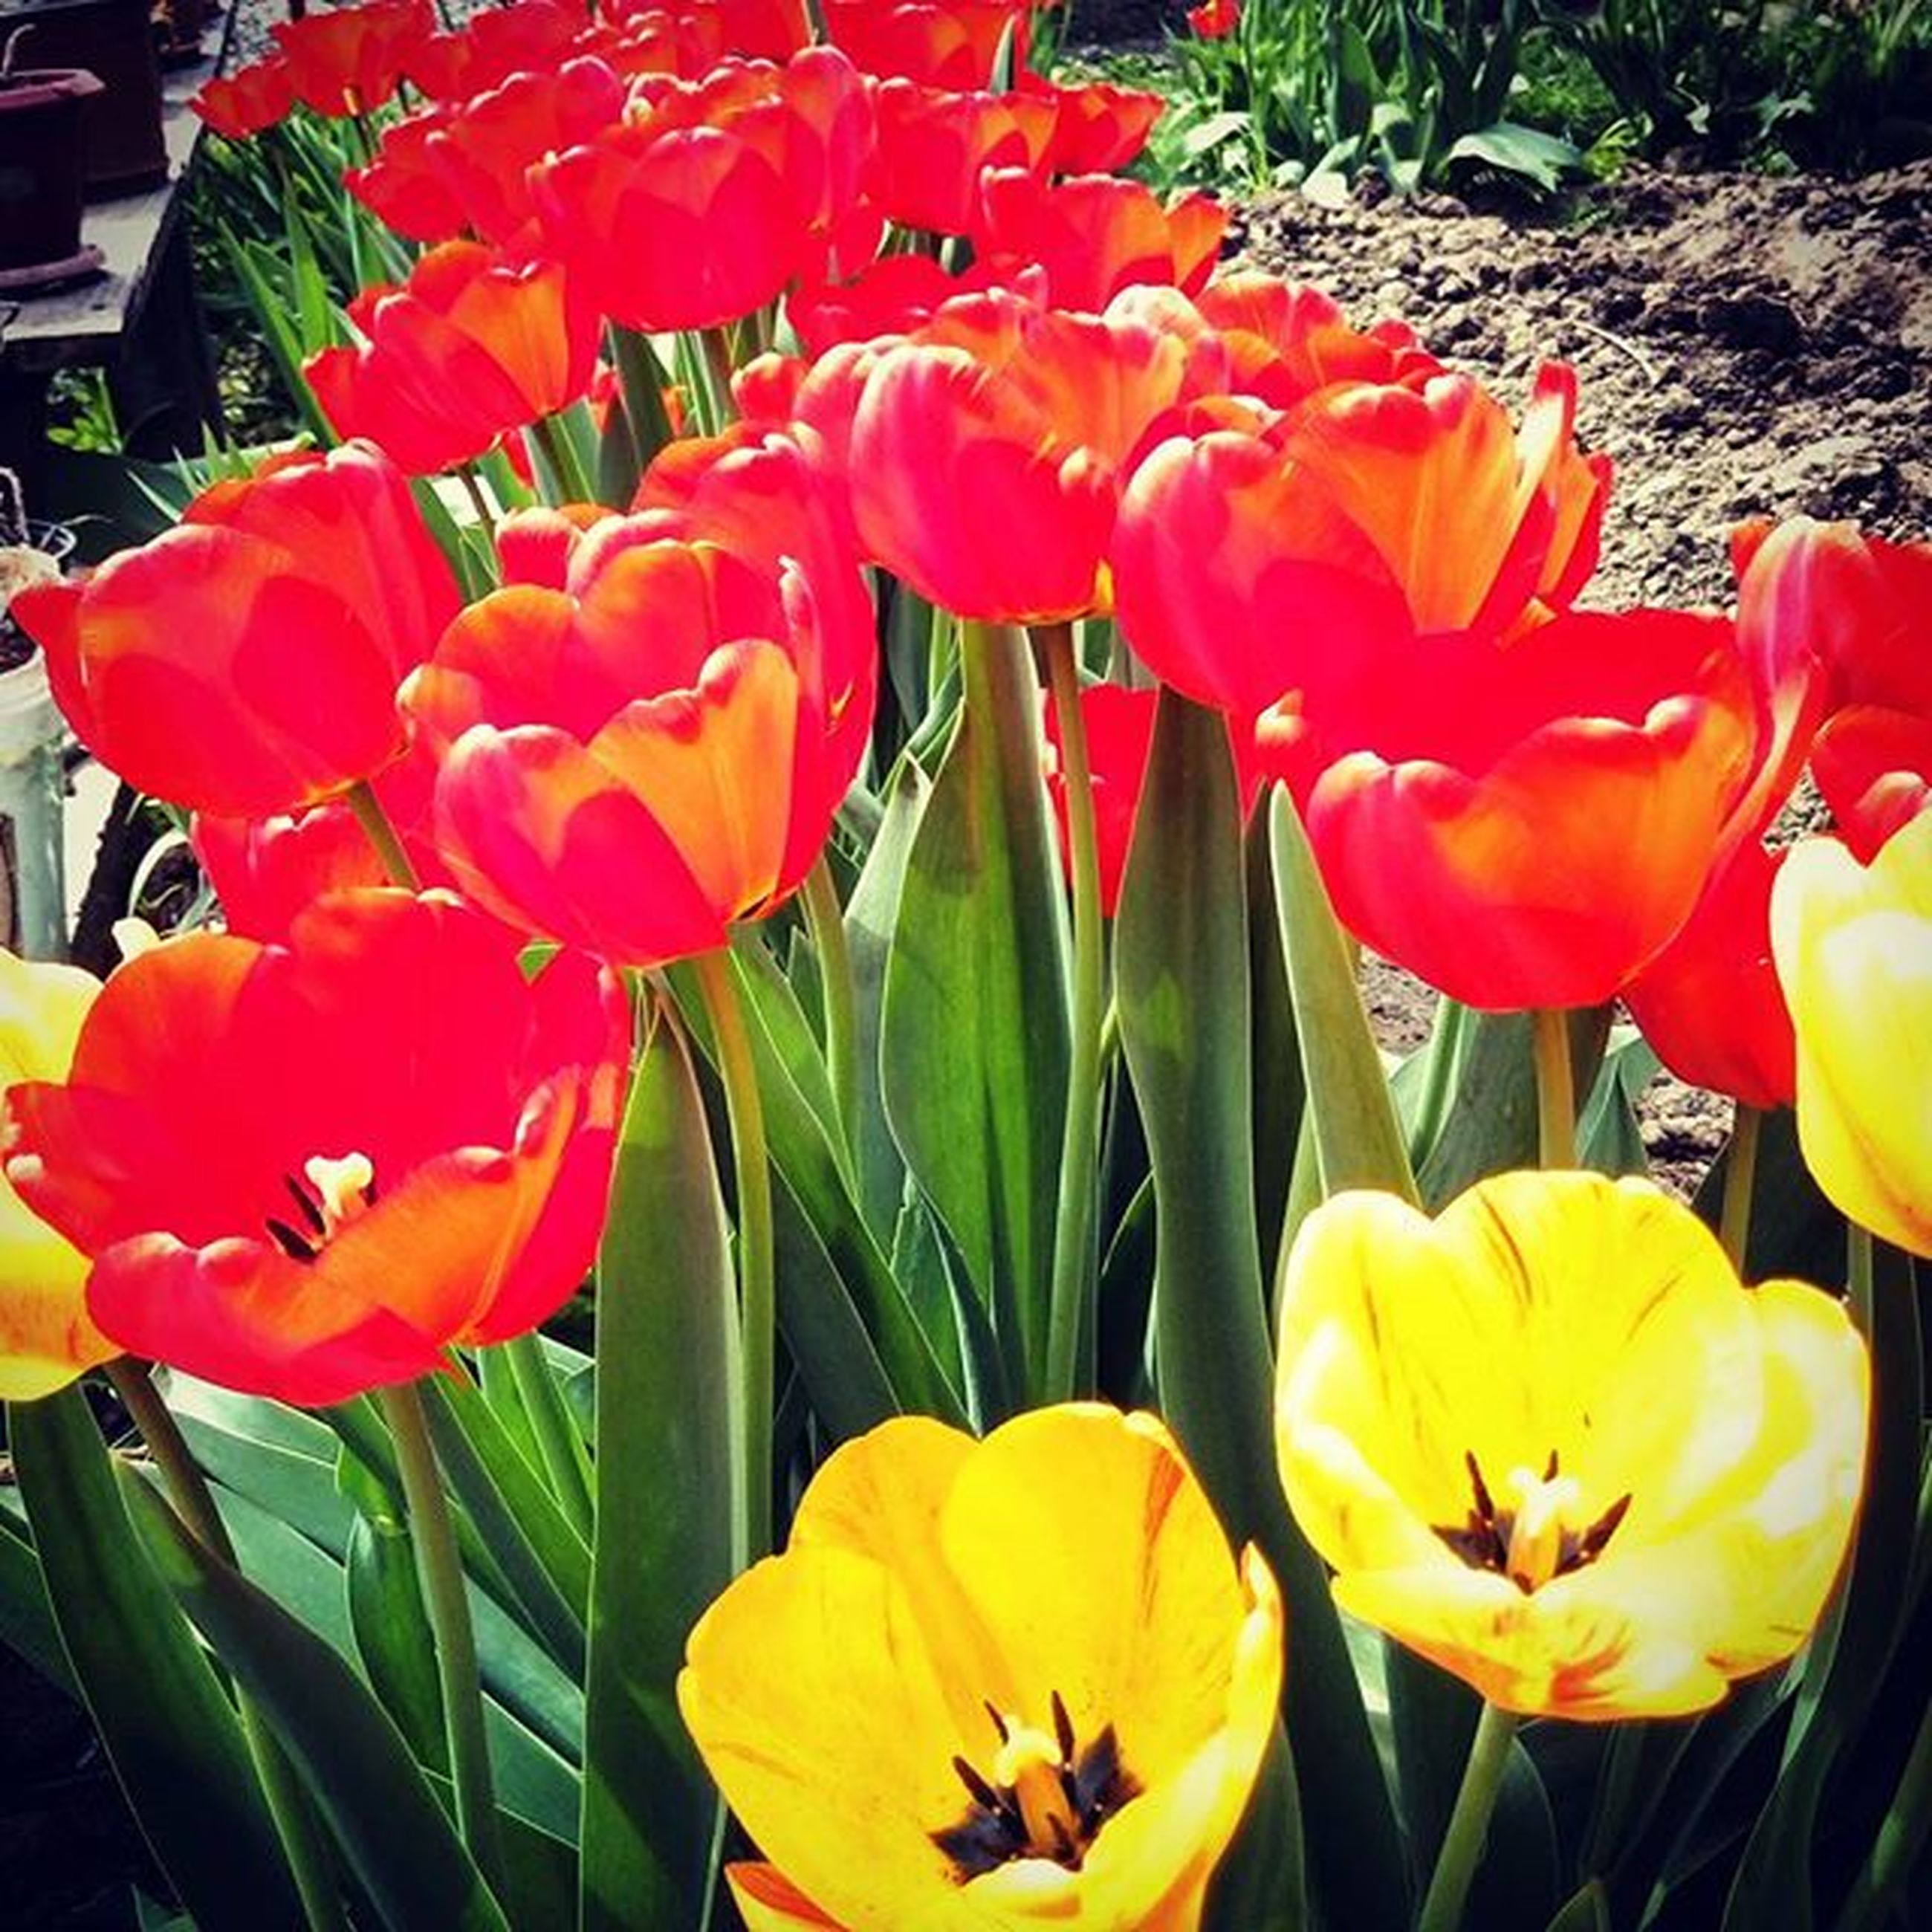 flower, petal, freshness, flower head, fragility, tulip, growth, beauty in nature, blooming, nature, plant, red, yellow, orange color, close-up, in bloom, park - man made space, outdoors, day, blossom